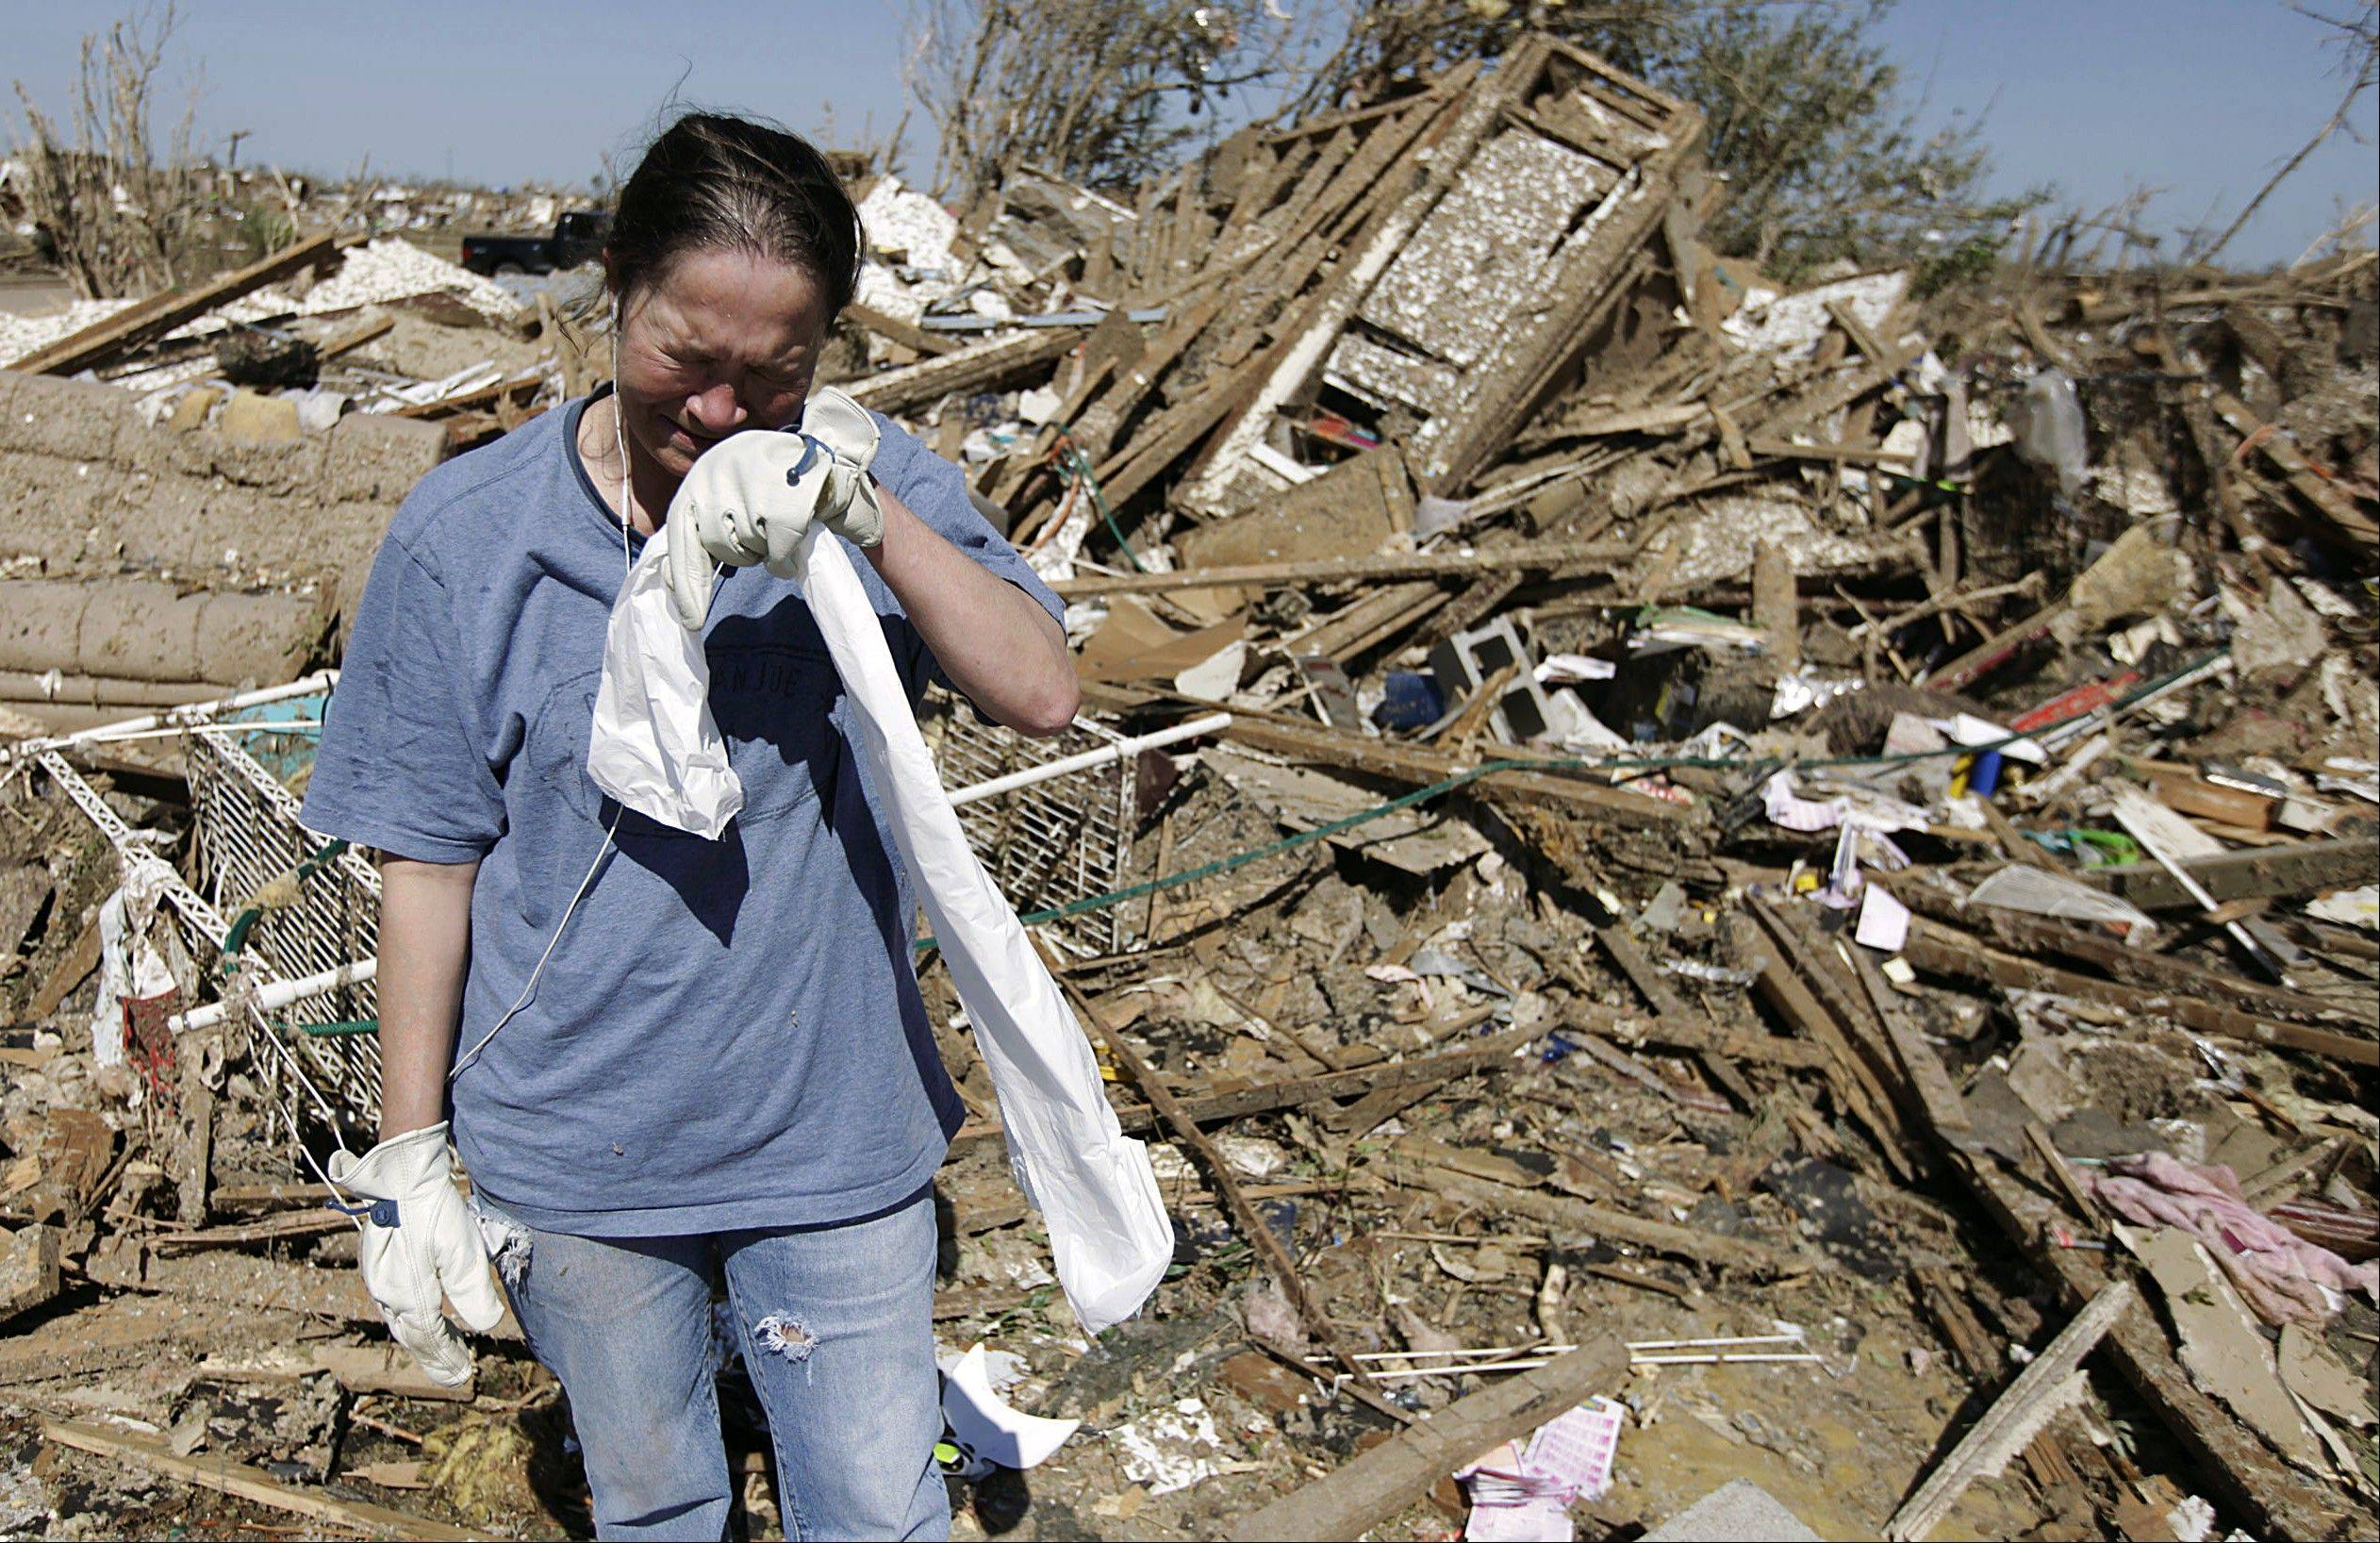 Kriket Krekemeyer cries while cleaning up her tornado-ravaged home in Moore, Okla., Wednesday, May 22, 2013.